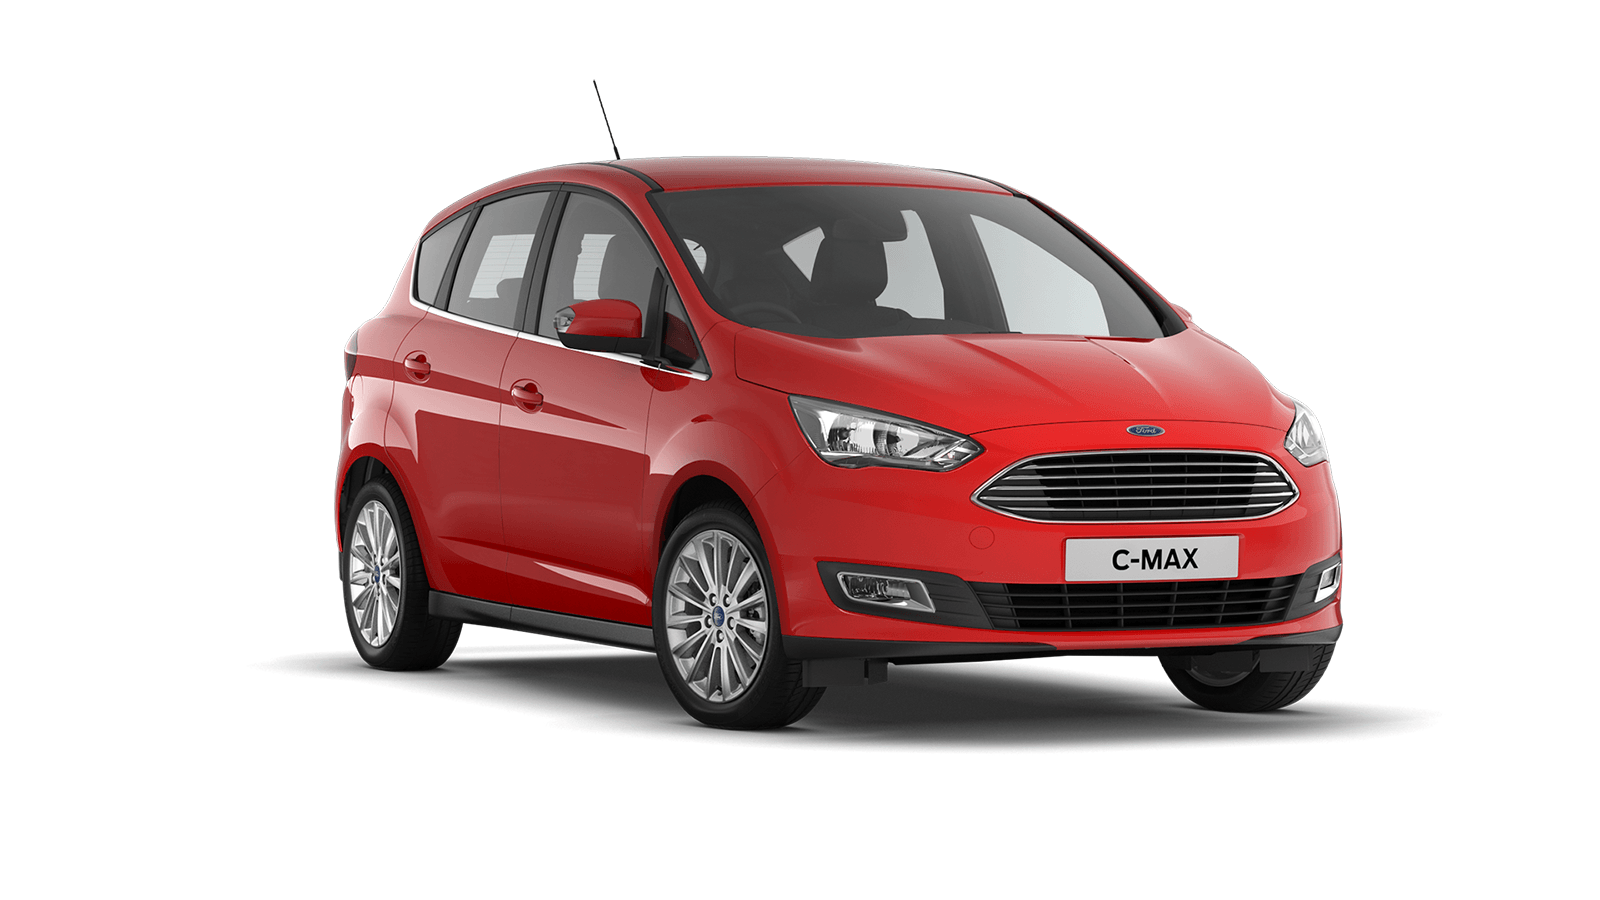 Ford C-MAX at Lamberts Garage